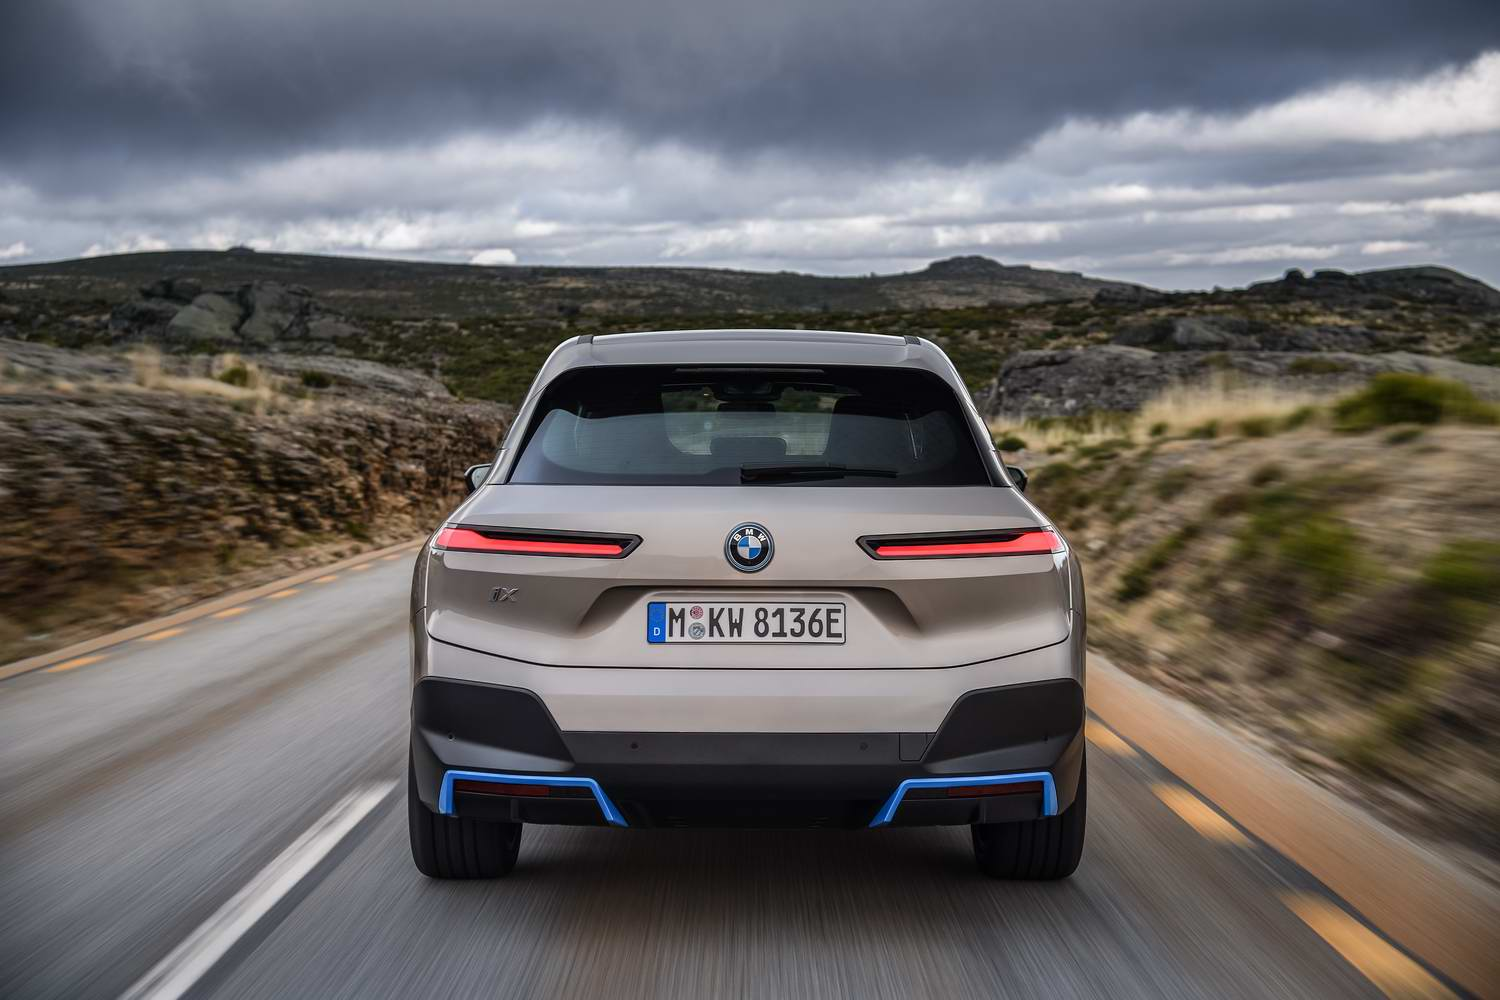 BMW iX SUV previews electric future - car and motoring ...